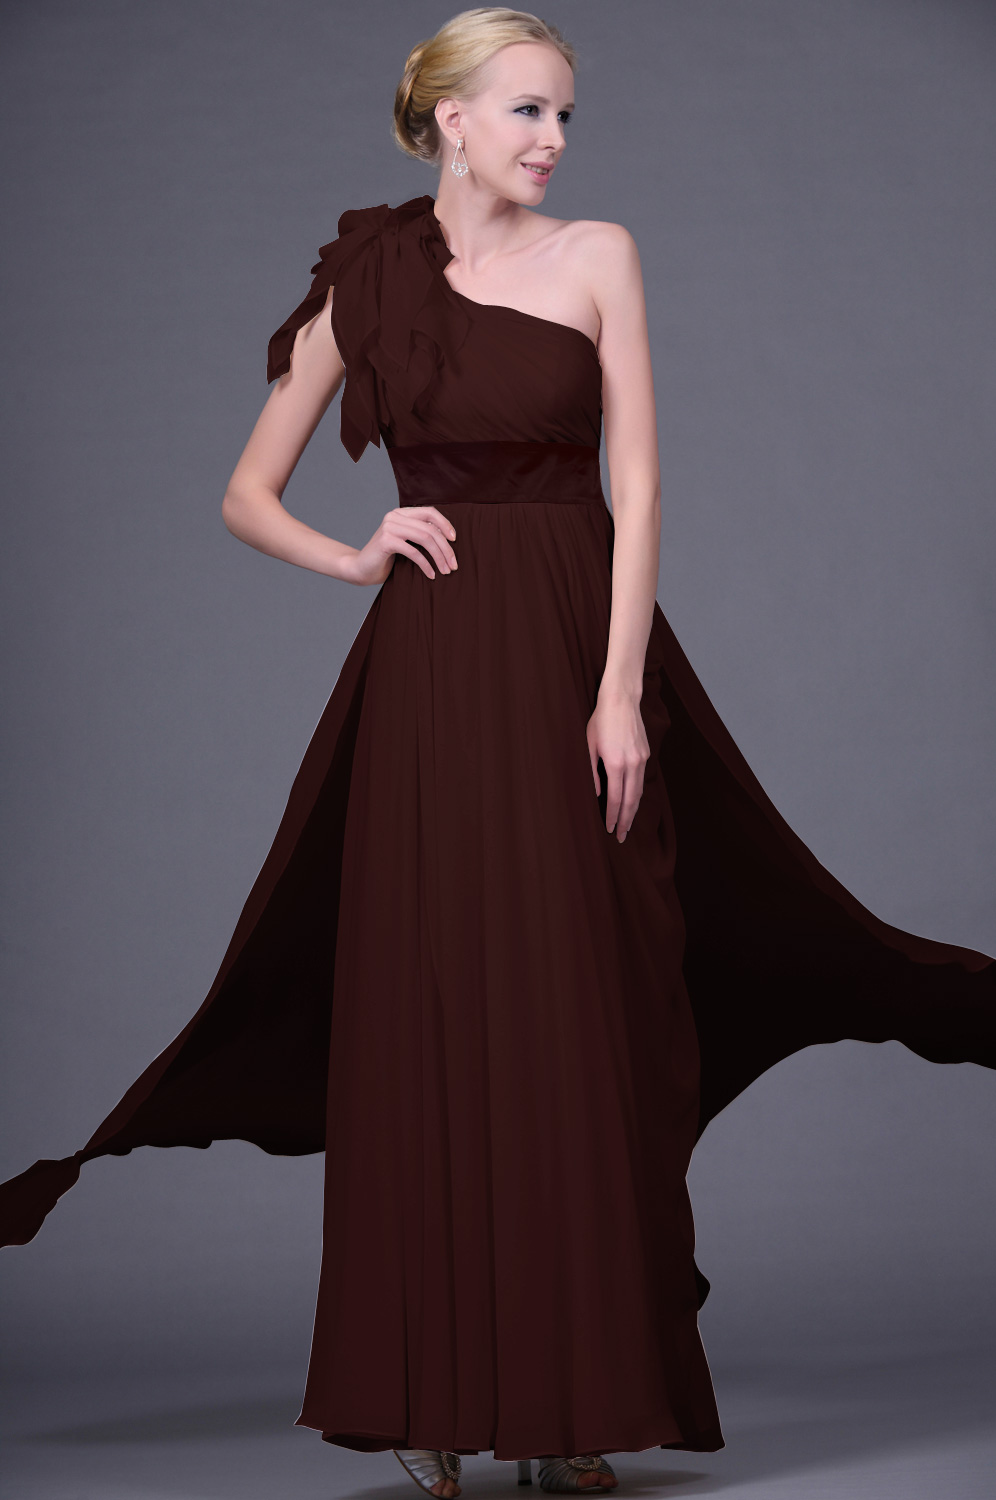 eDressit 2011 New Arrival Amazing Stylish Single Shoulder Evening Dress (00111314w)